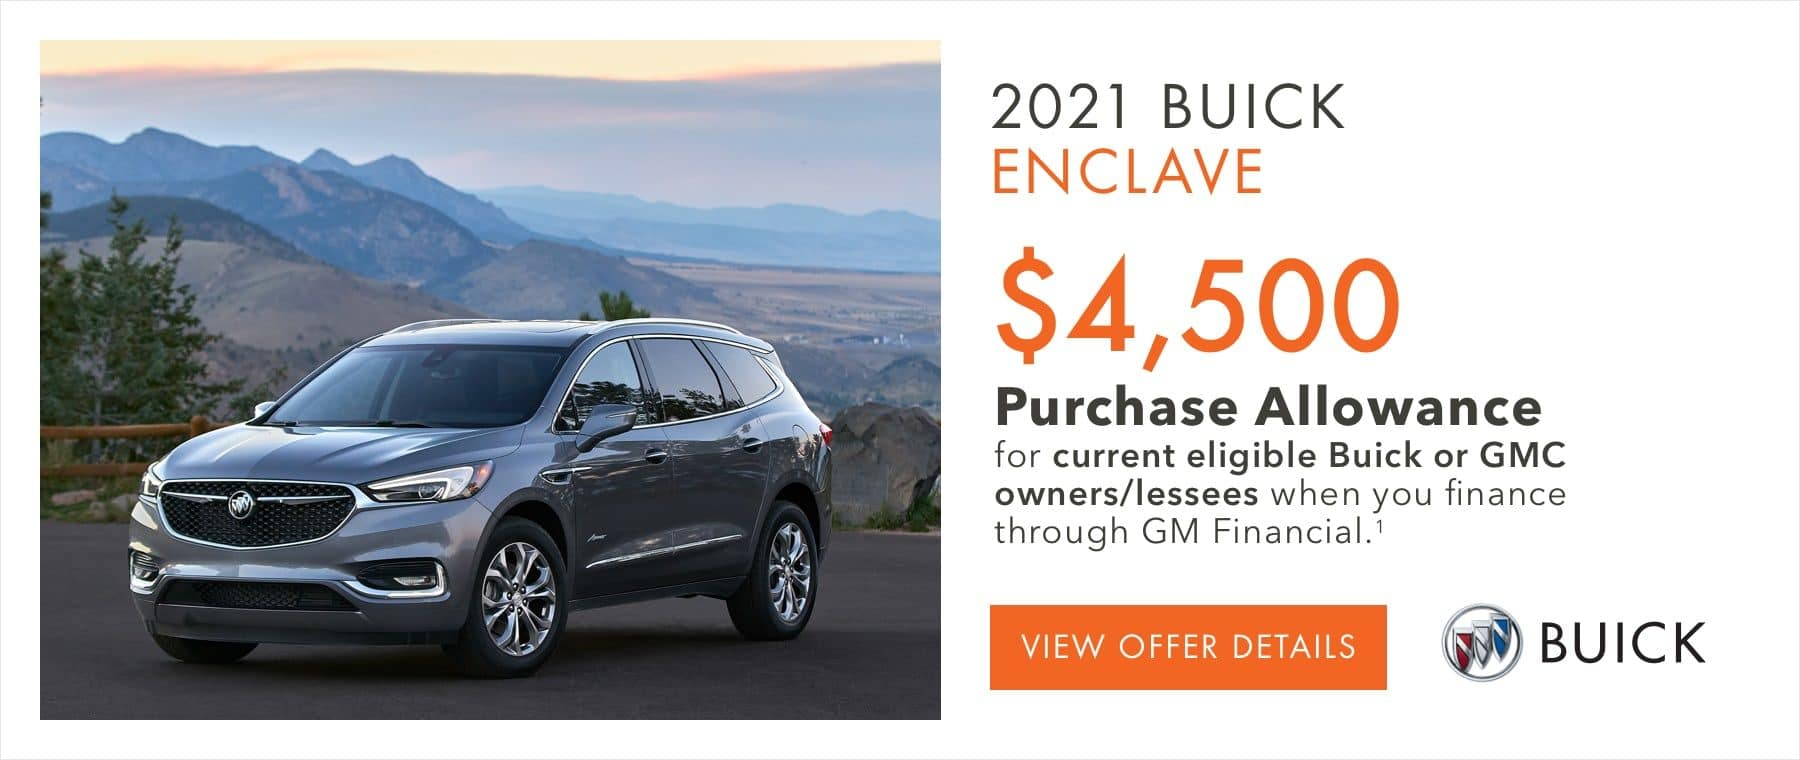 $4,500 Purchase Allowance for current eligible Buick or GMC owners/lessees when you finance through GM Financial.1